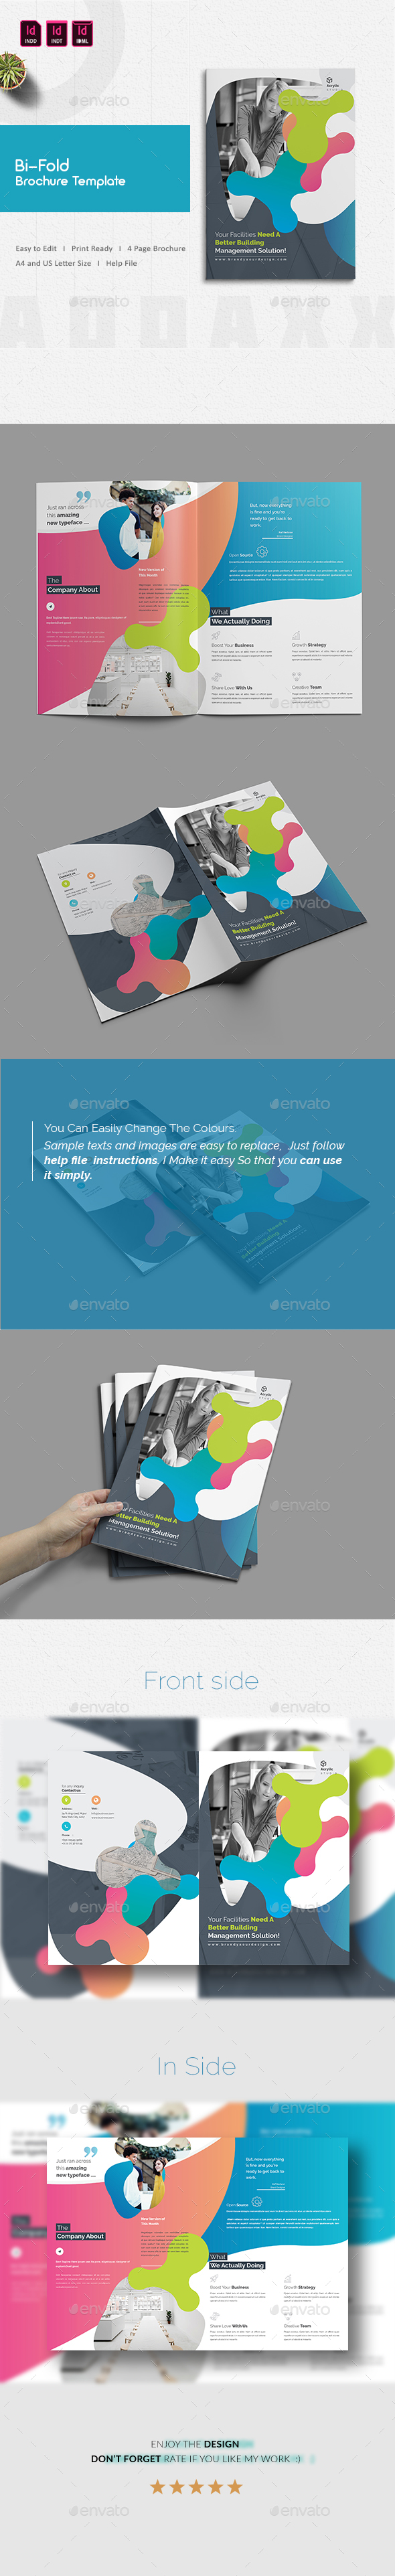 Bi-Fold Brochure Template - Corporate Brochures